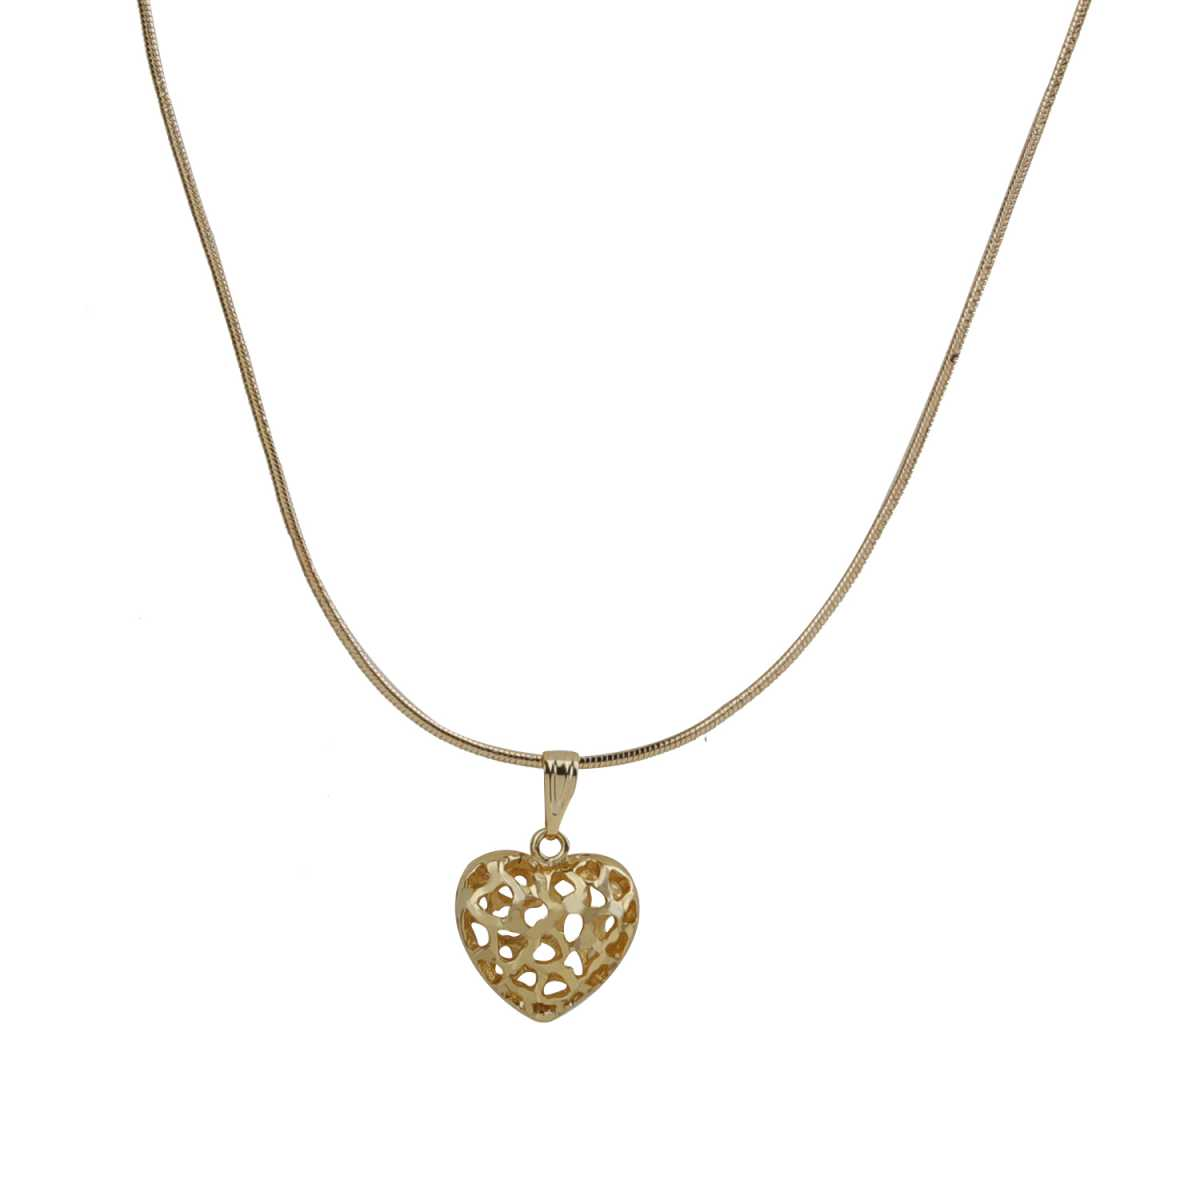 Trendy Gold Hollow Design Heart Pendent Neckless Chain Of 18 Inch For Girls And Women Jewellery